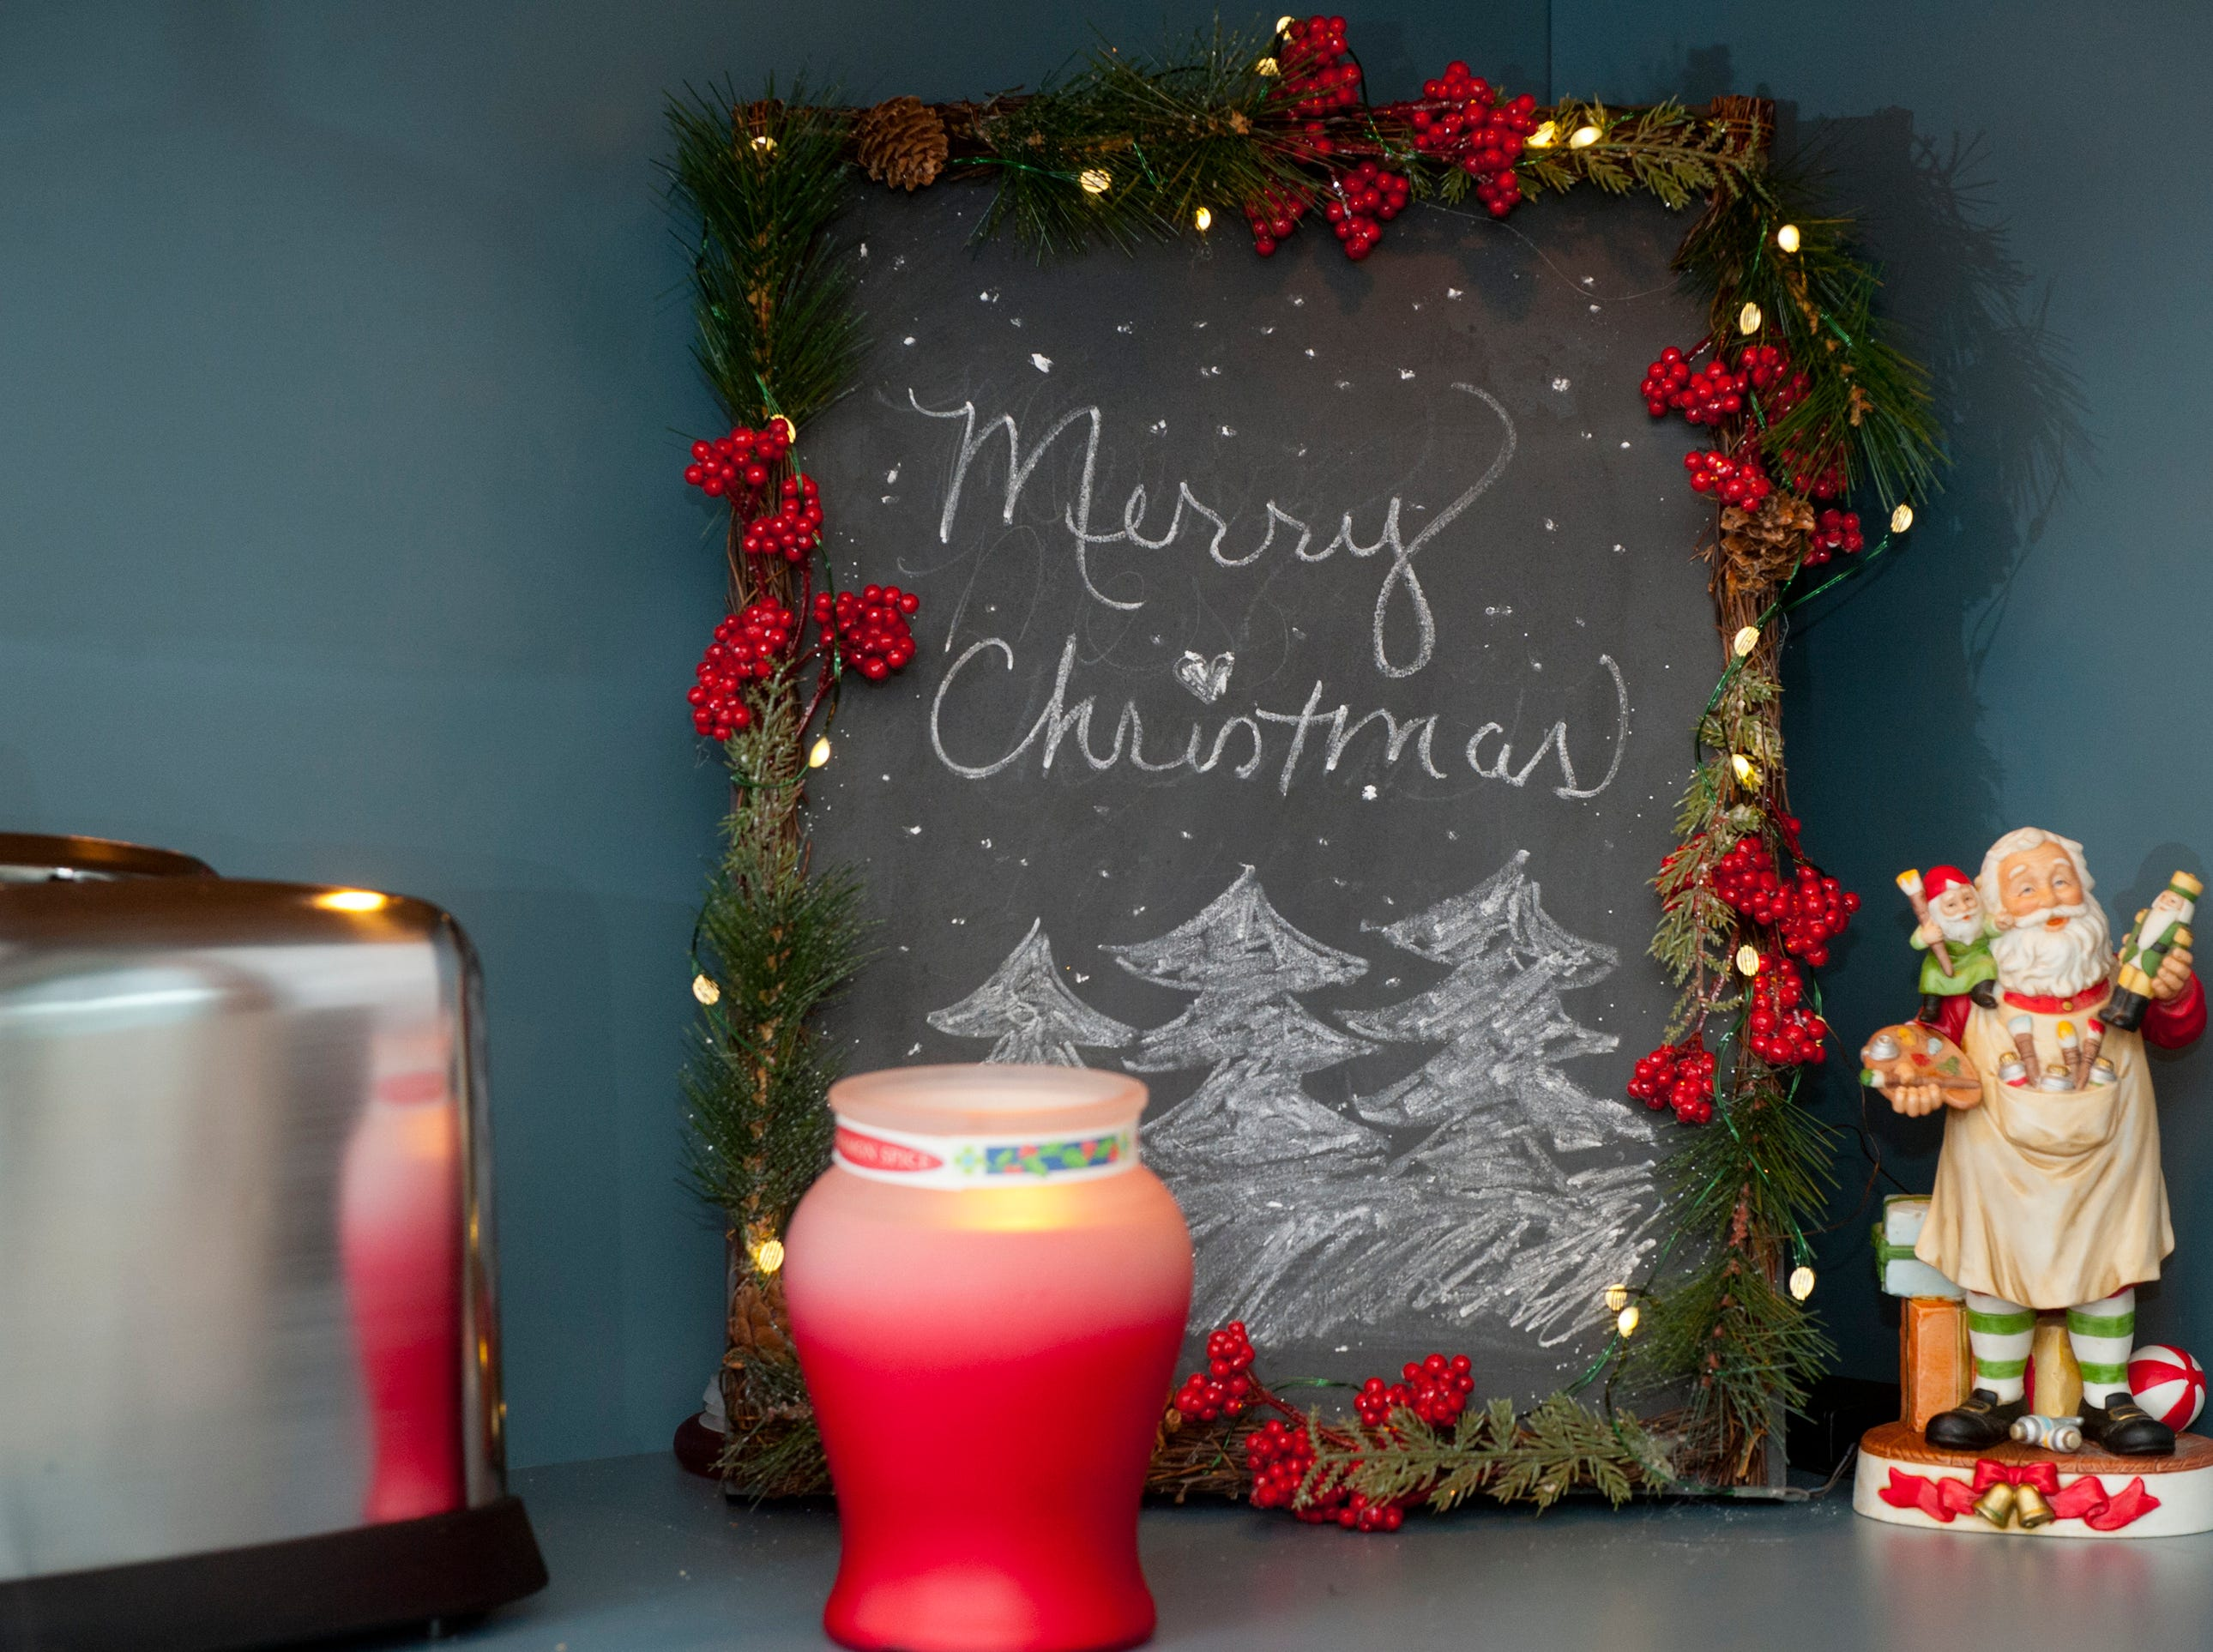 In the Clifford kitchen, a slate board wrapped in holly greets you with a holiday message.